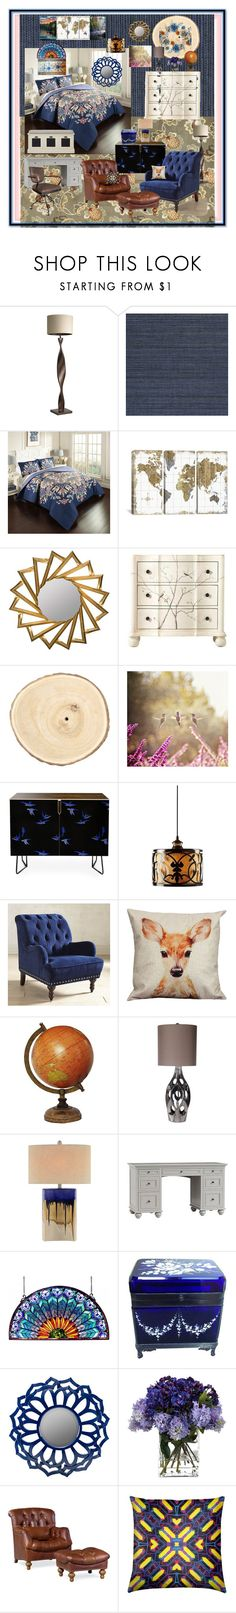 """""""Autumn Inspired Master Suite"""" by aurorasblueheaven ❤ liked on Polyvore featuring interior, interiors, interior design, home, home decor, interior decorating, Home Decorators Collection, Pier 1 Imports, Élitis and Marble Hill"""